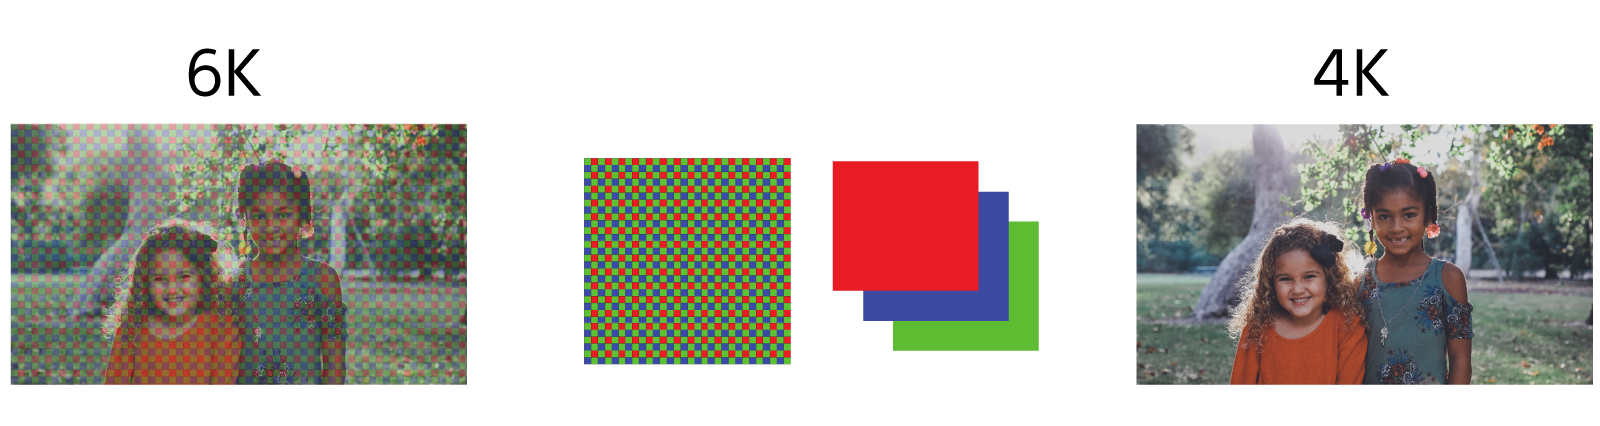 Diagrams illustrating imaging process with 6K to 4K bayer pixels.